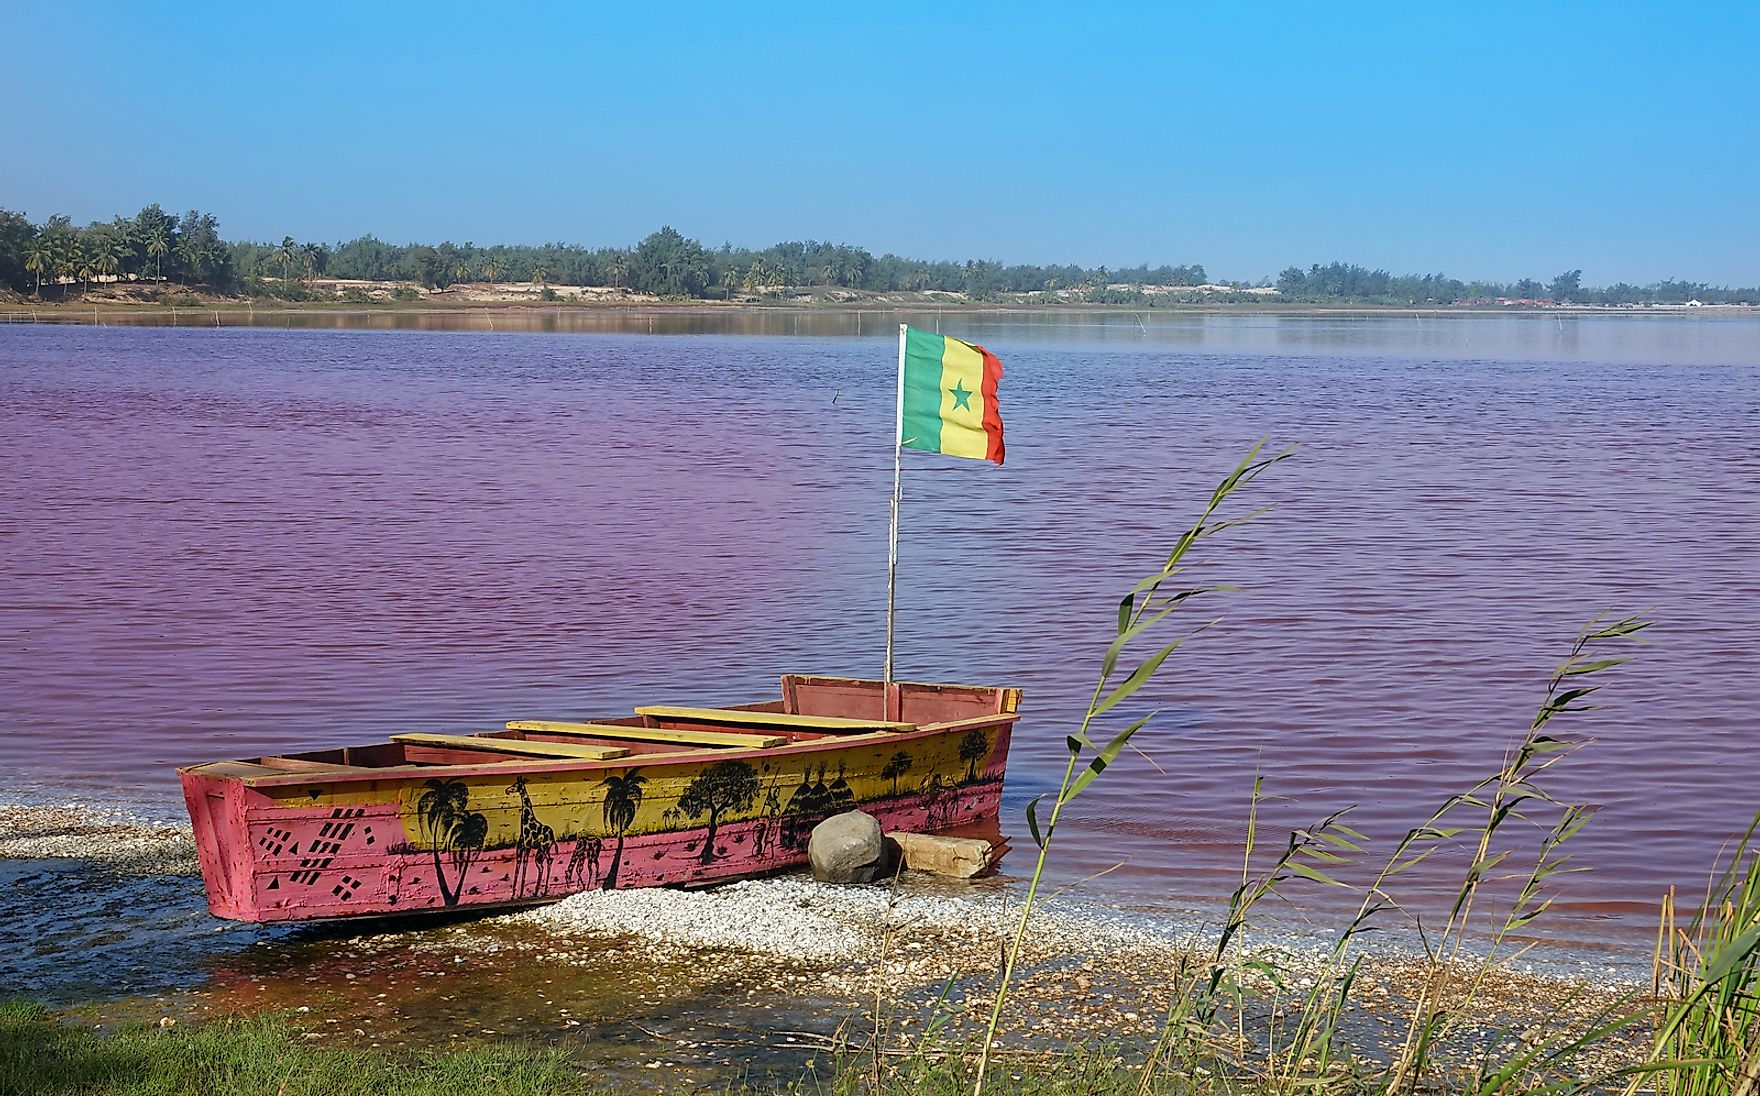 Lake Retba, Senegal.